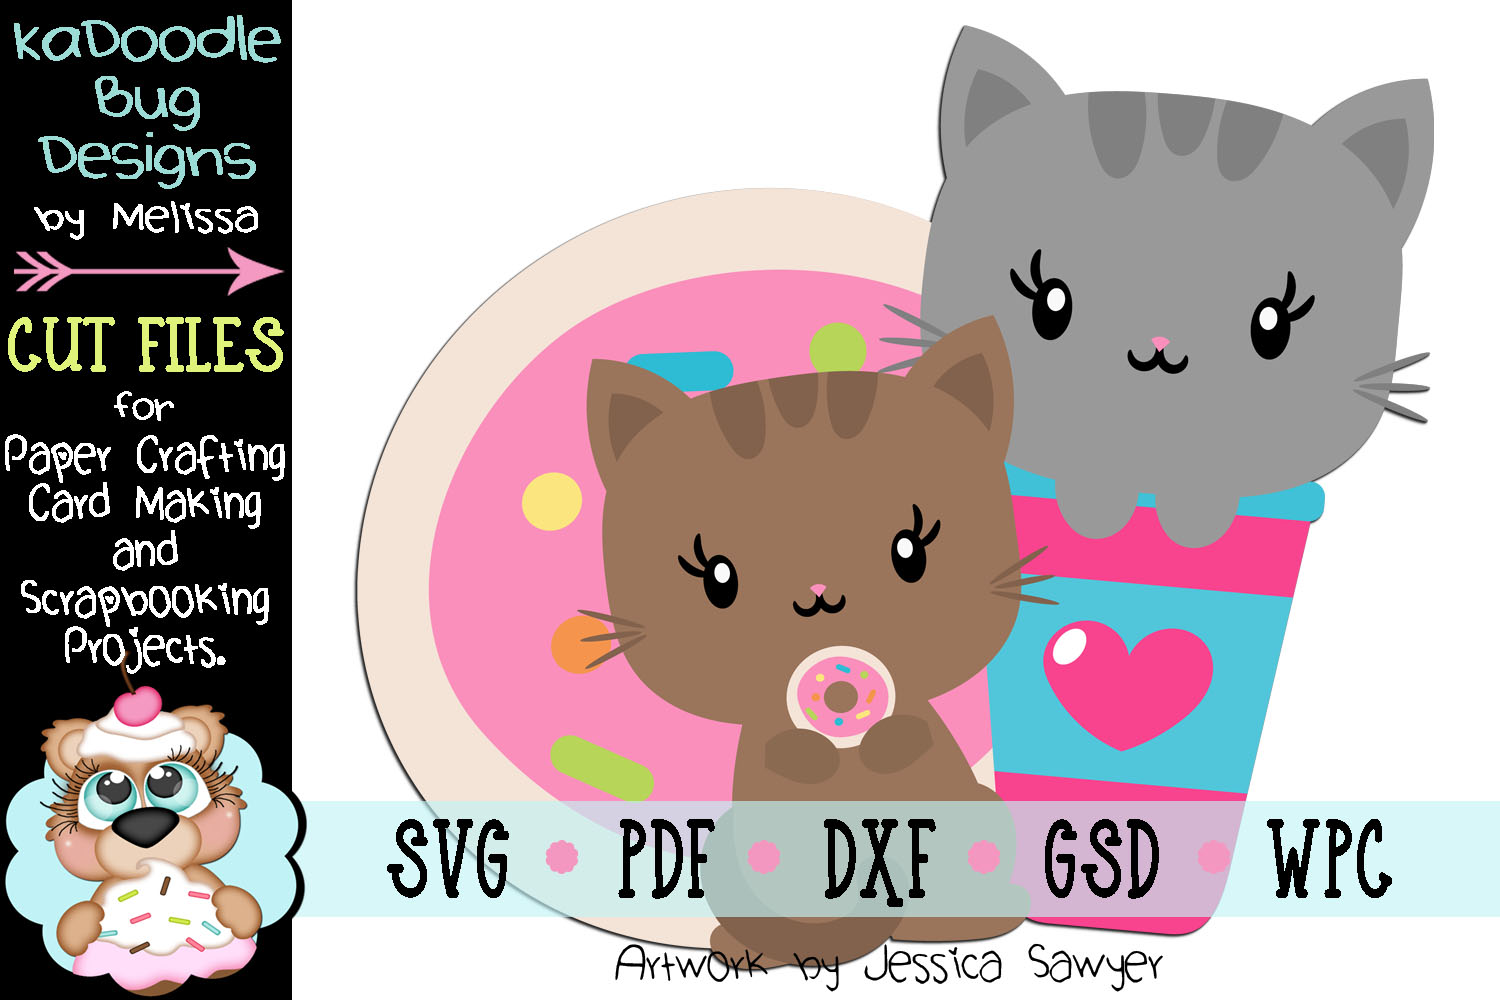 Coffee and Donut Kitty Cut File - SVG PDF DXF GSD example image 1